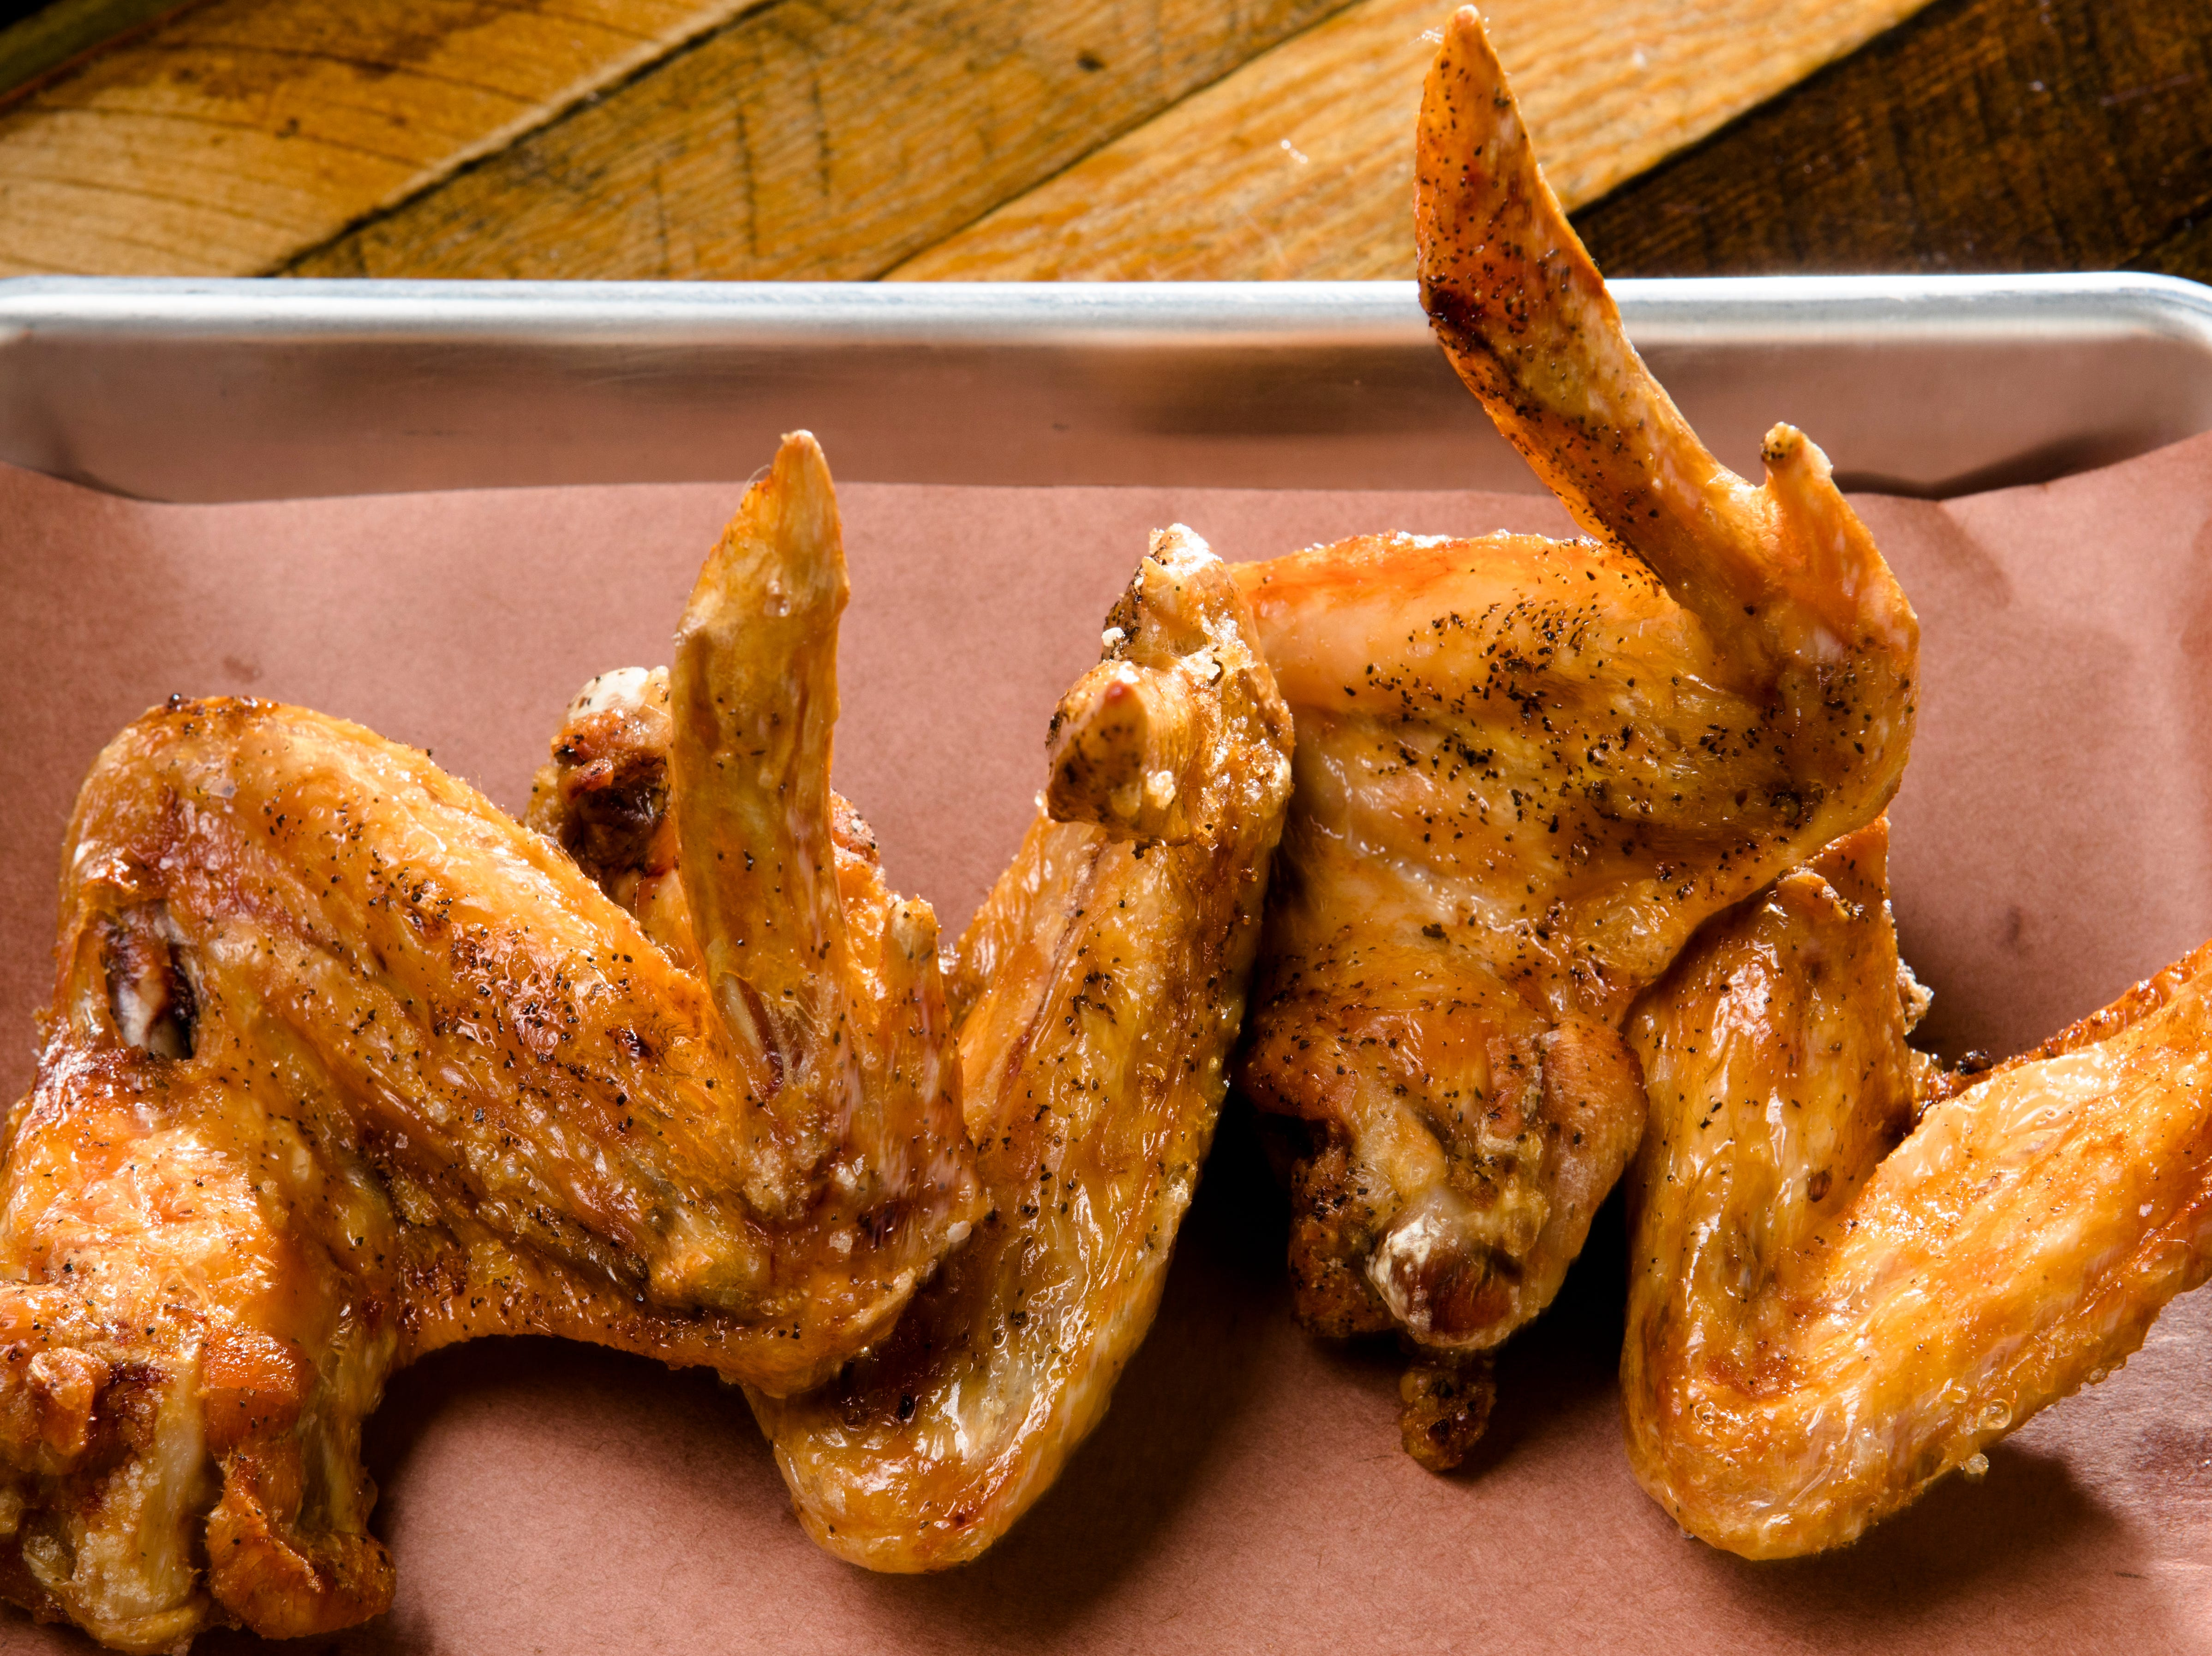 Station Family + BBQ's Smoked Chicken Wings are full wings smoked with salt and pepper and then flash fried to order.